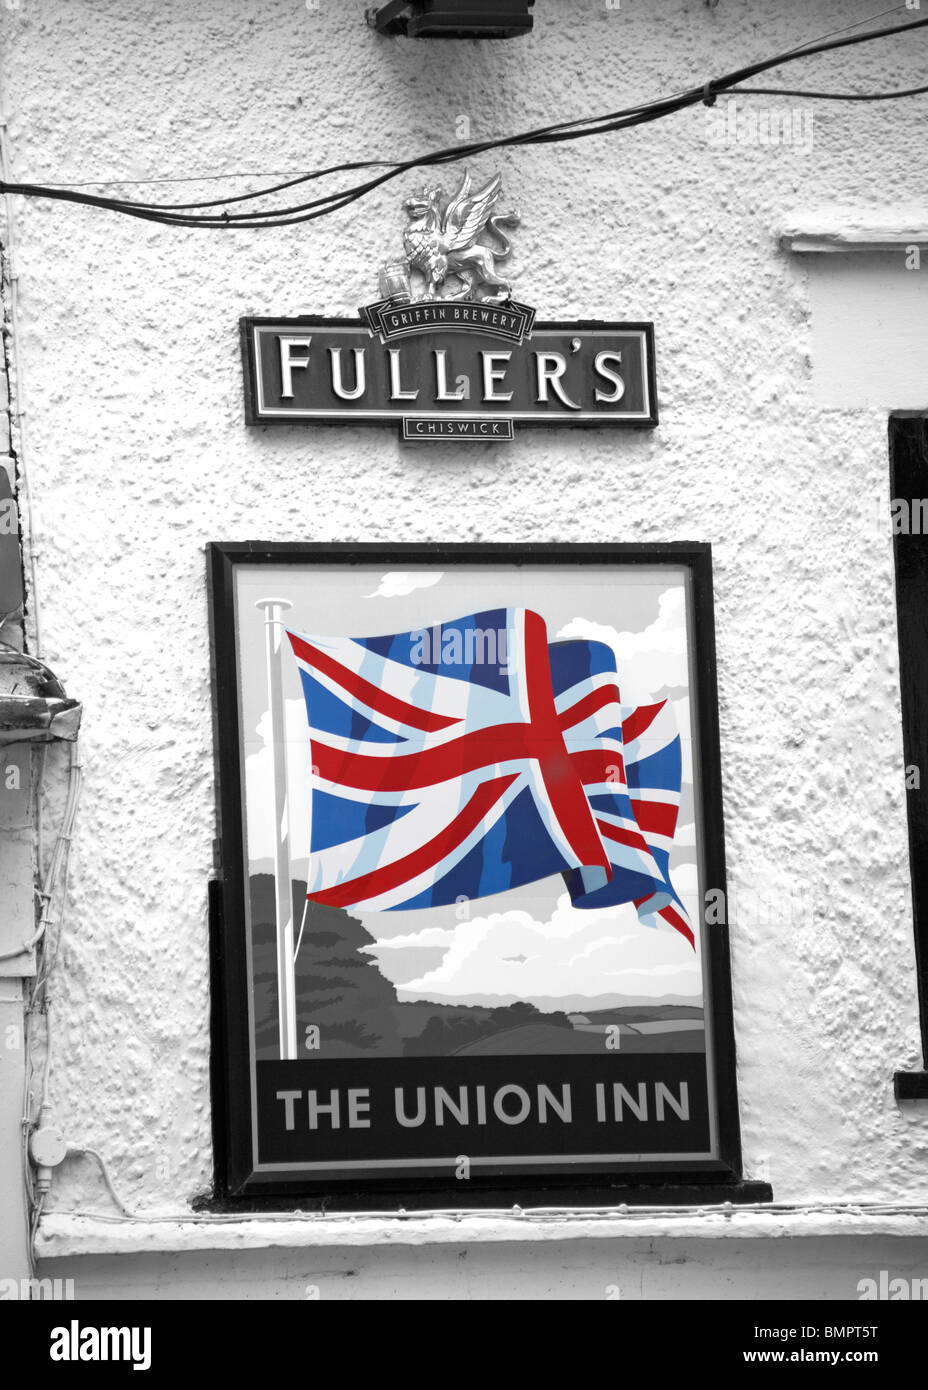 The Union Inn pub sign on wall in Cowes, Isle of Wight - Griffin Brewers Fuller's Chiswick - Stock Image